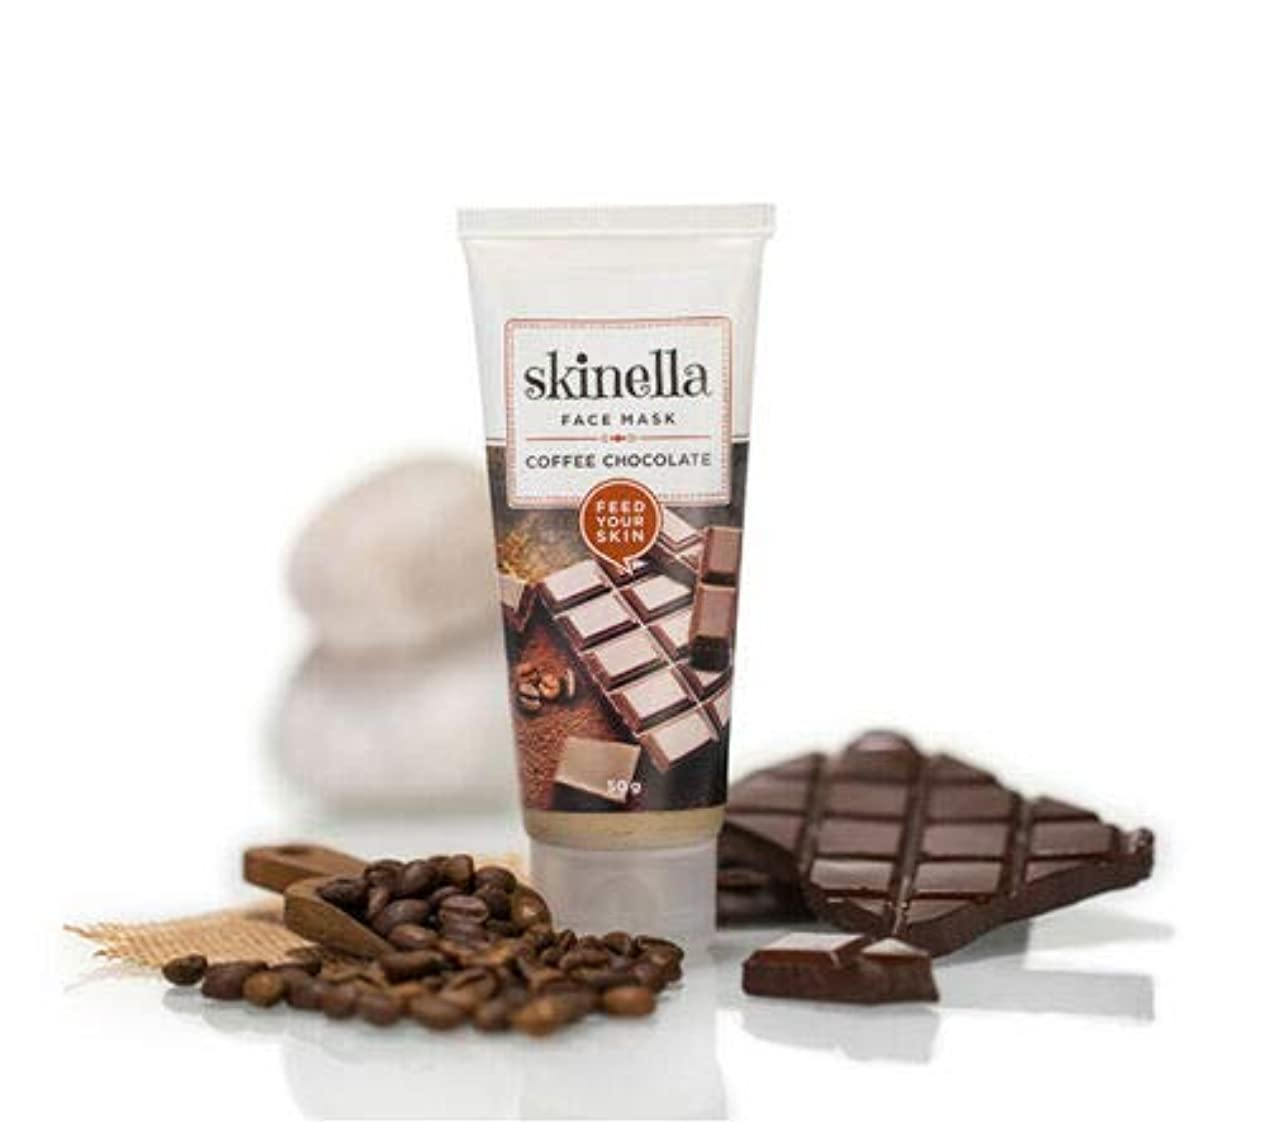 縮れた楽しむ哀れなSkinella Coffee Chocolate Face Mask 50g for a hydrated and rejuvenated look Skinellaコーヒーチョコレートフェイスマスク50g